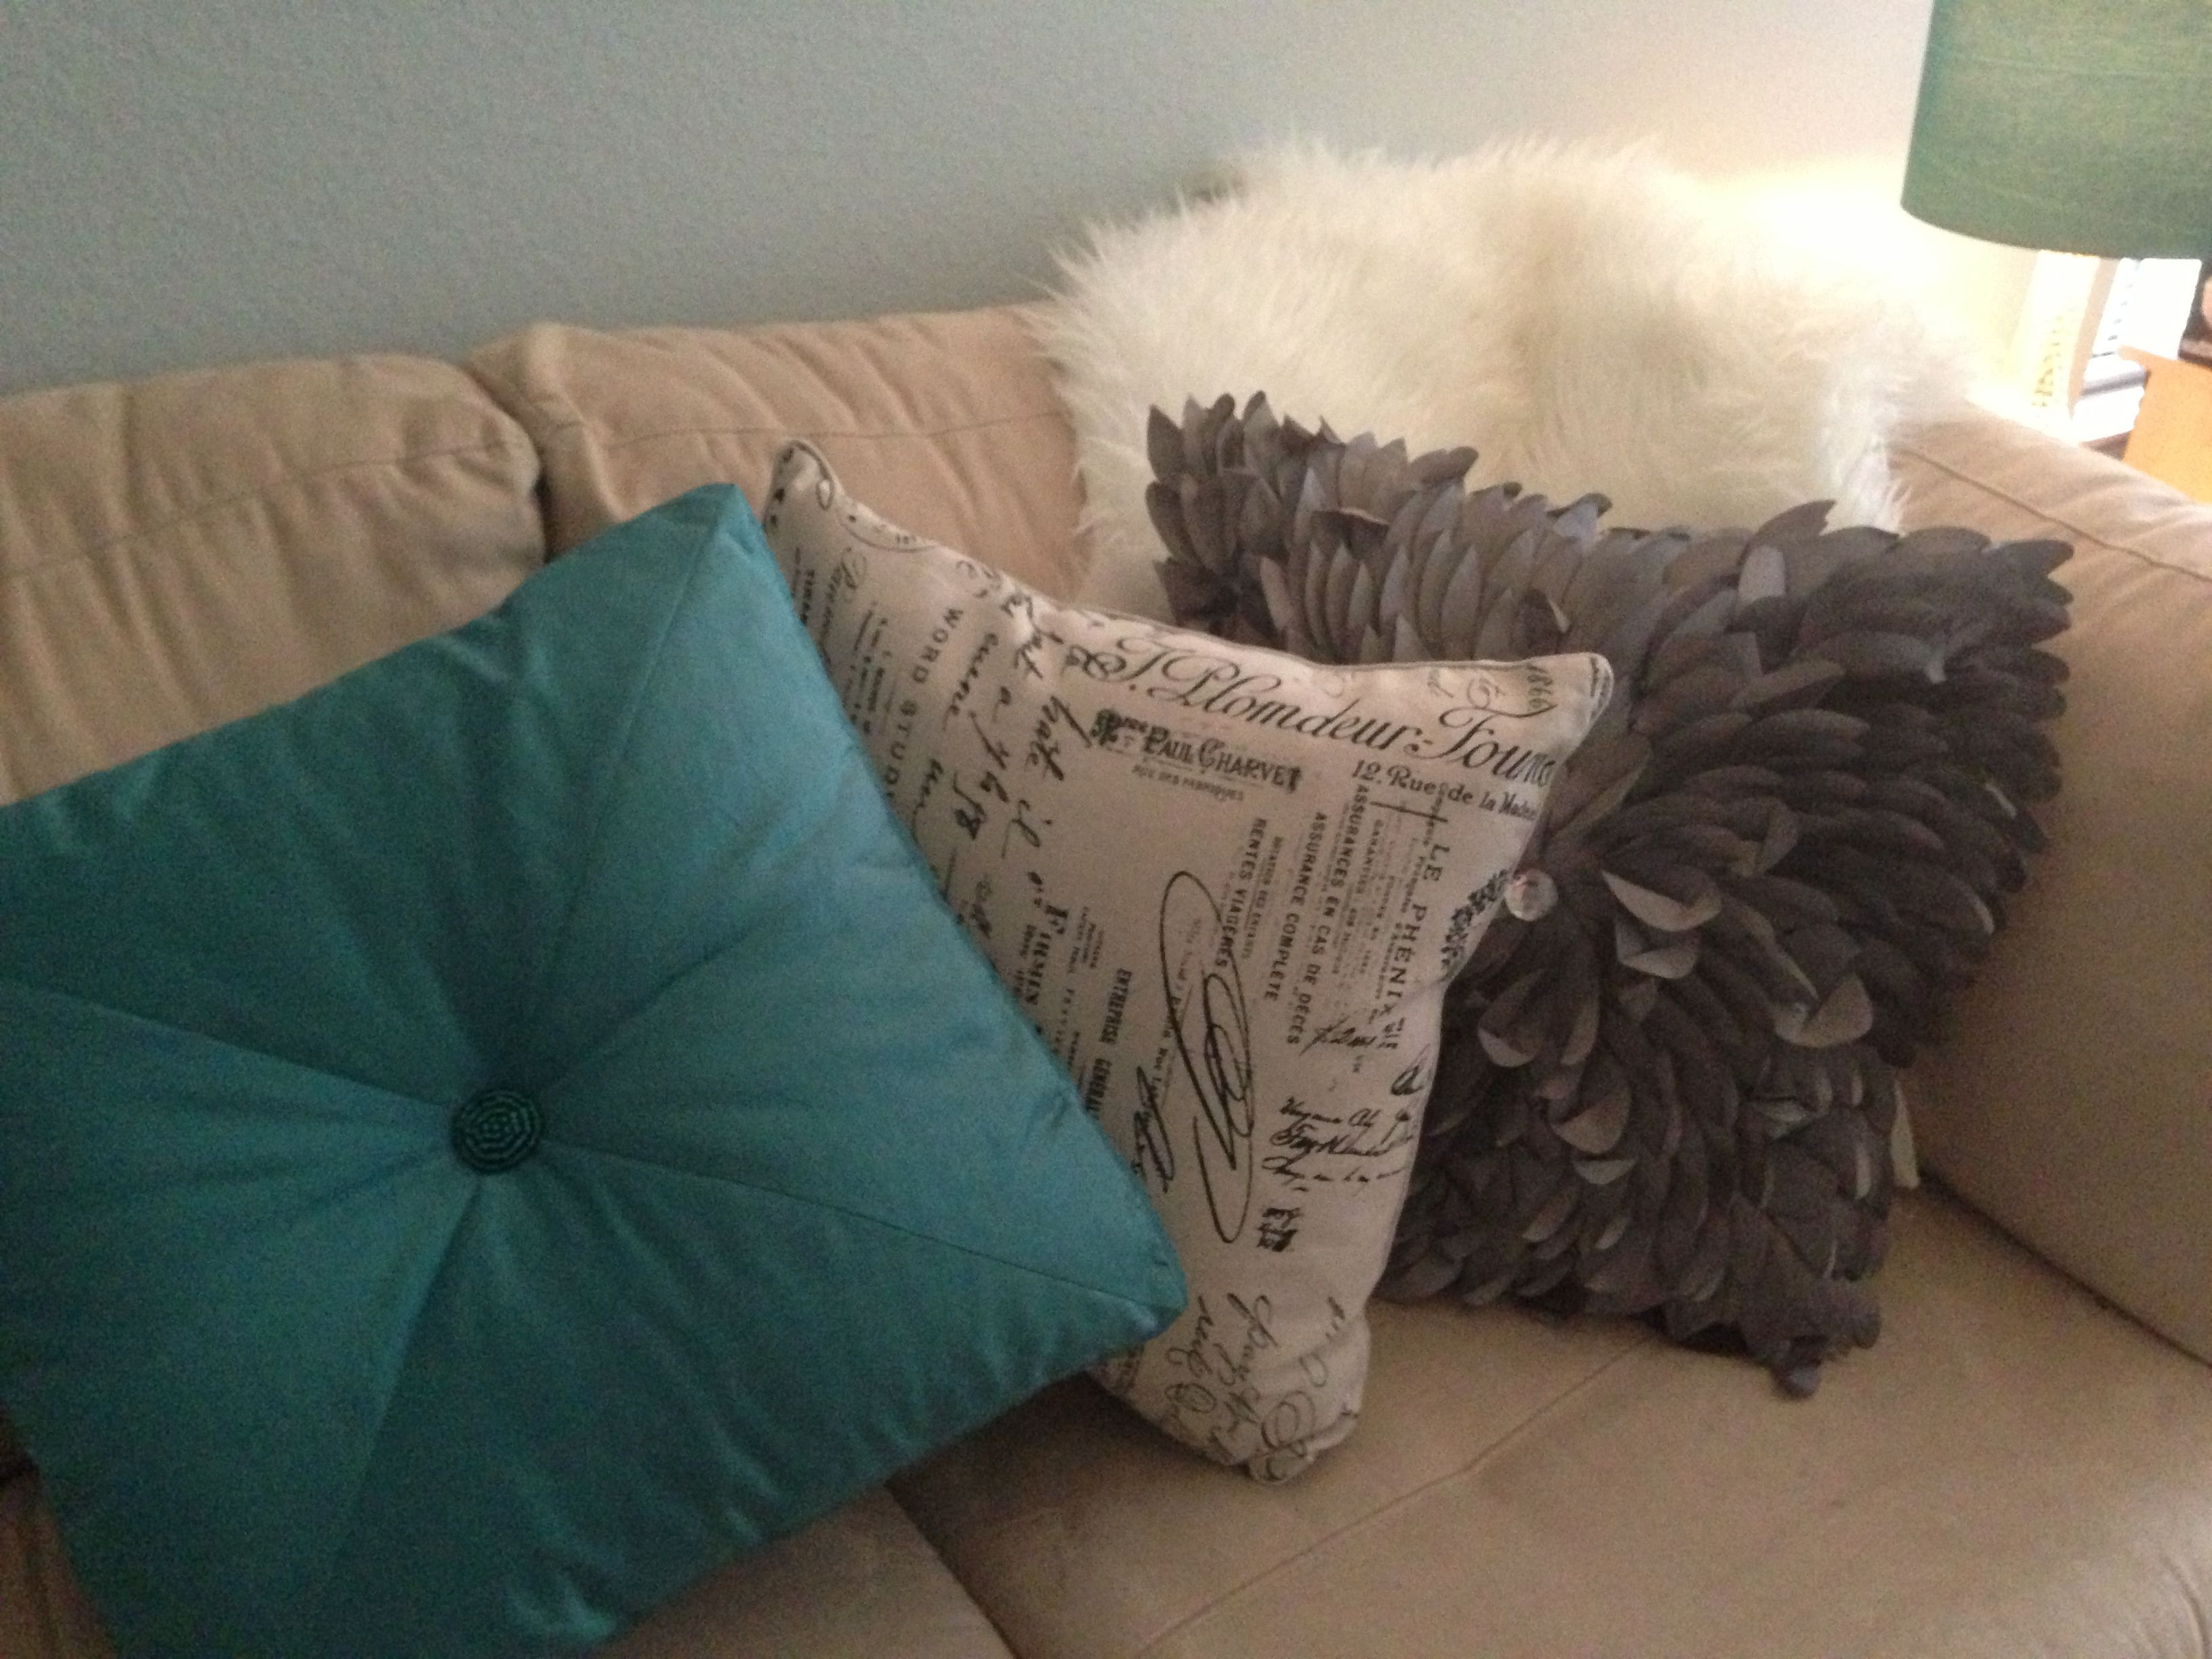 Throw Pillows On Grey Couch : Throw pillows on cream couch - teal pillow, cream with writing, and shaggy grey pillow with ...